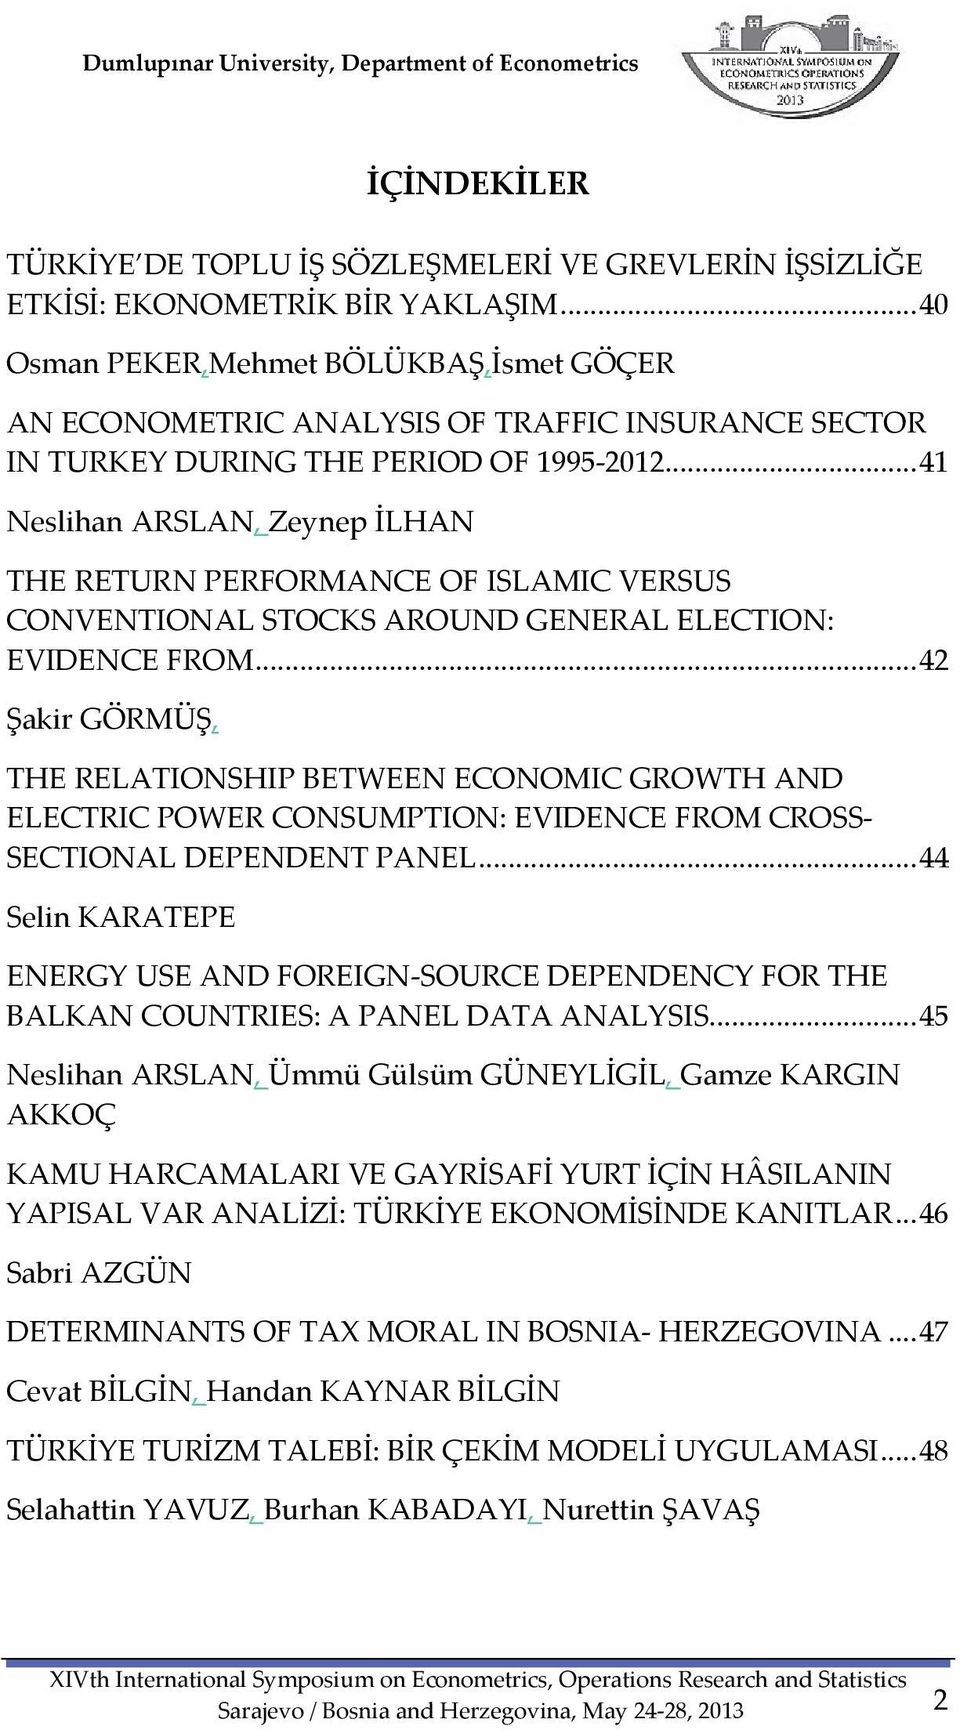 .. 41 Neslihan ARSLAN, Zeynep İLHAN THE RETURN PERFORMANCE OF ISLAMIC VERSUS CONVENTIONAL STOCKS AROUND GENERAL ELECTION: EVIDENCE FROM.